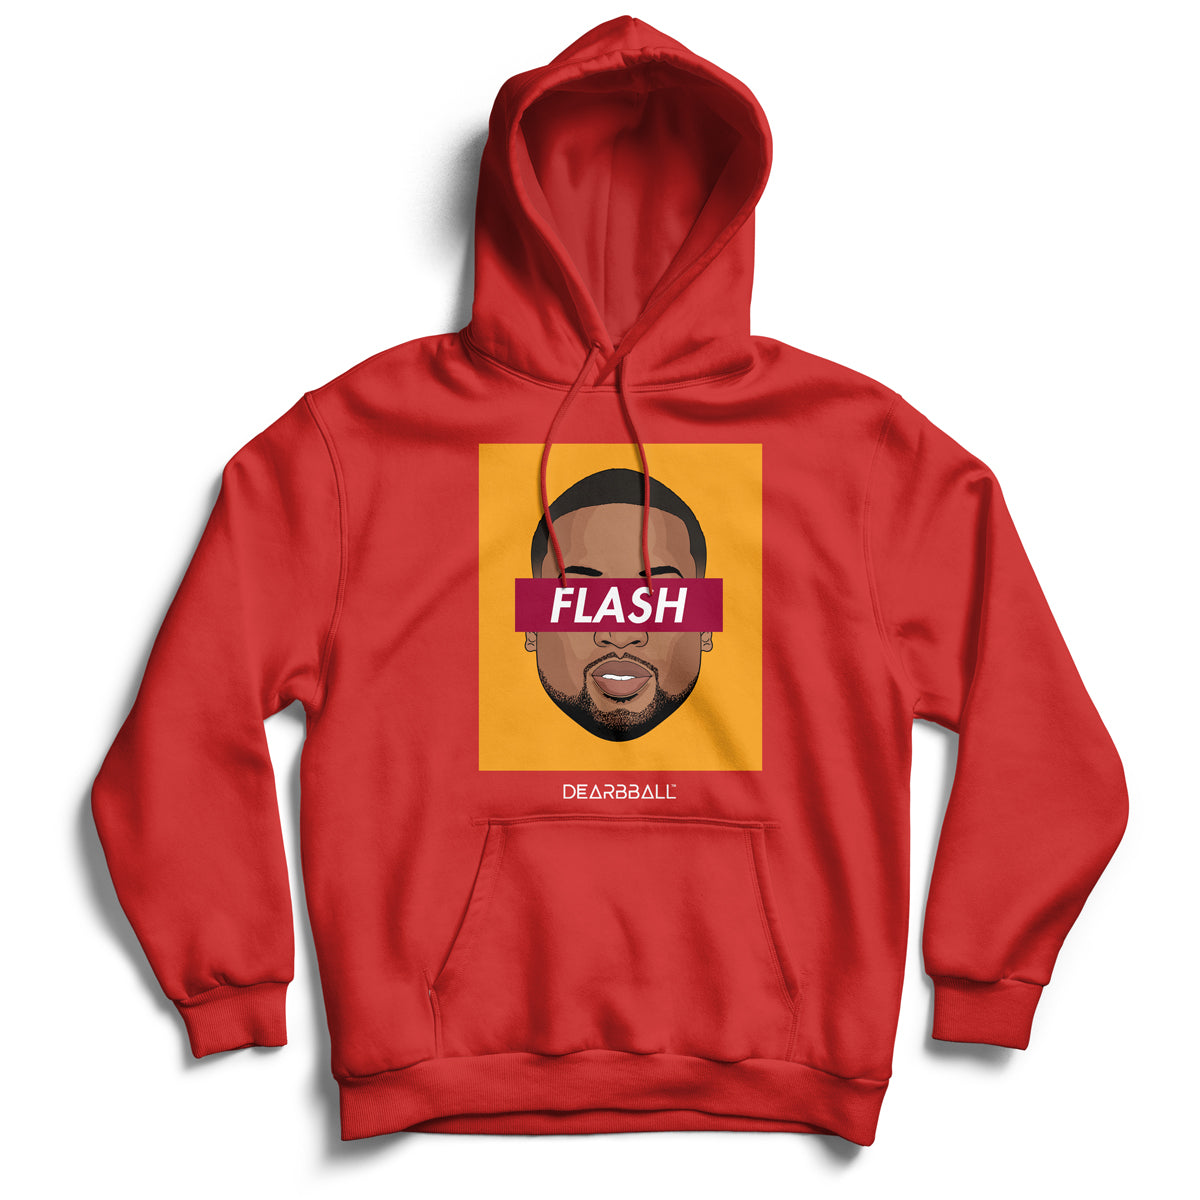 Dwyane_Wade_hoodie_FLASH_Miami_Heat_Colors_dearbball_red